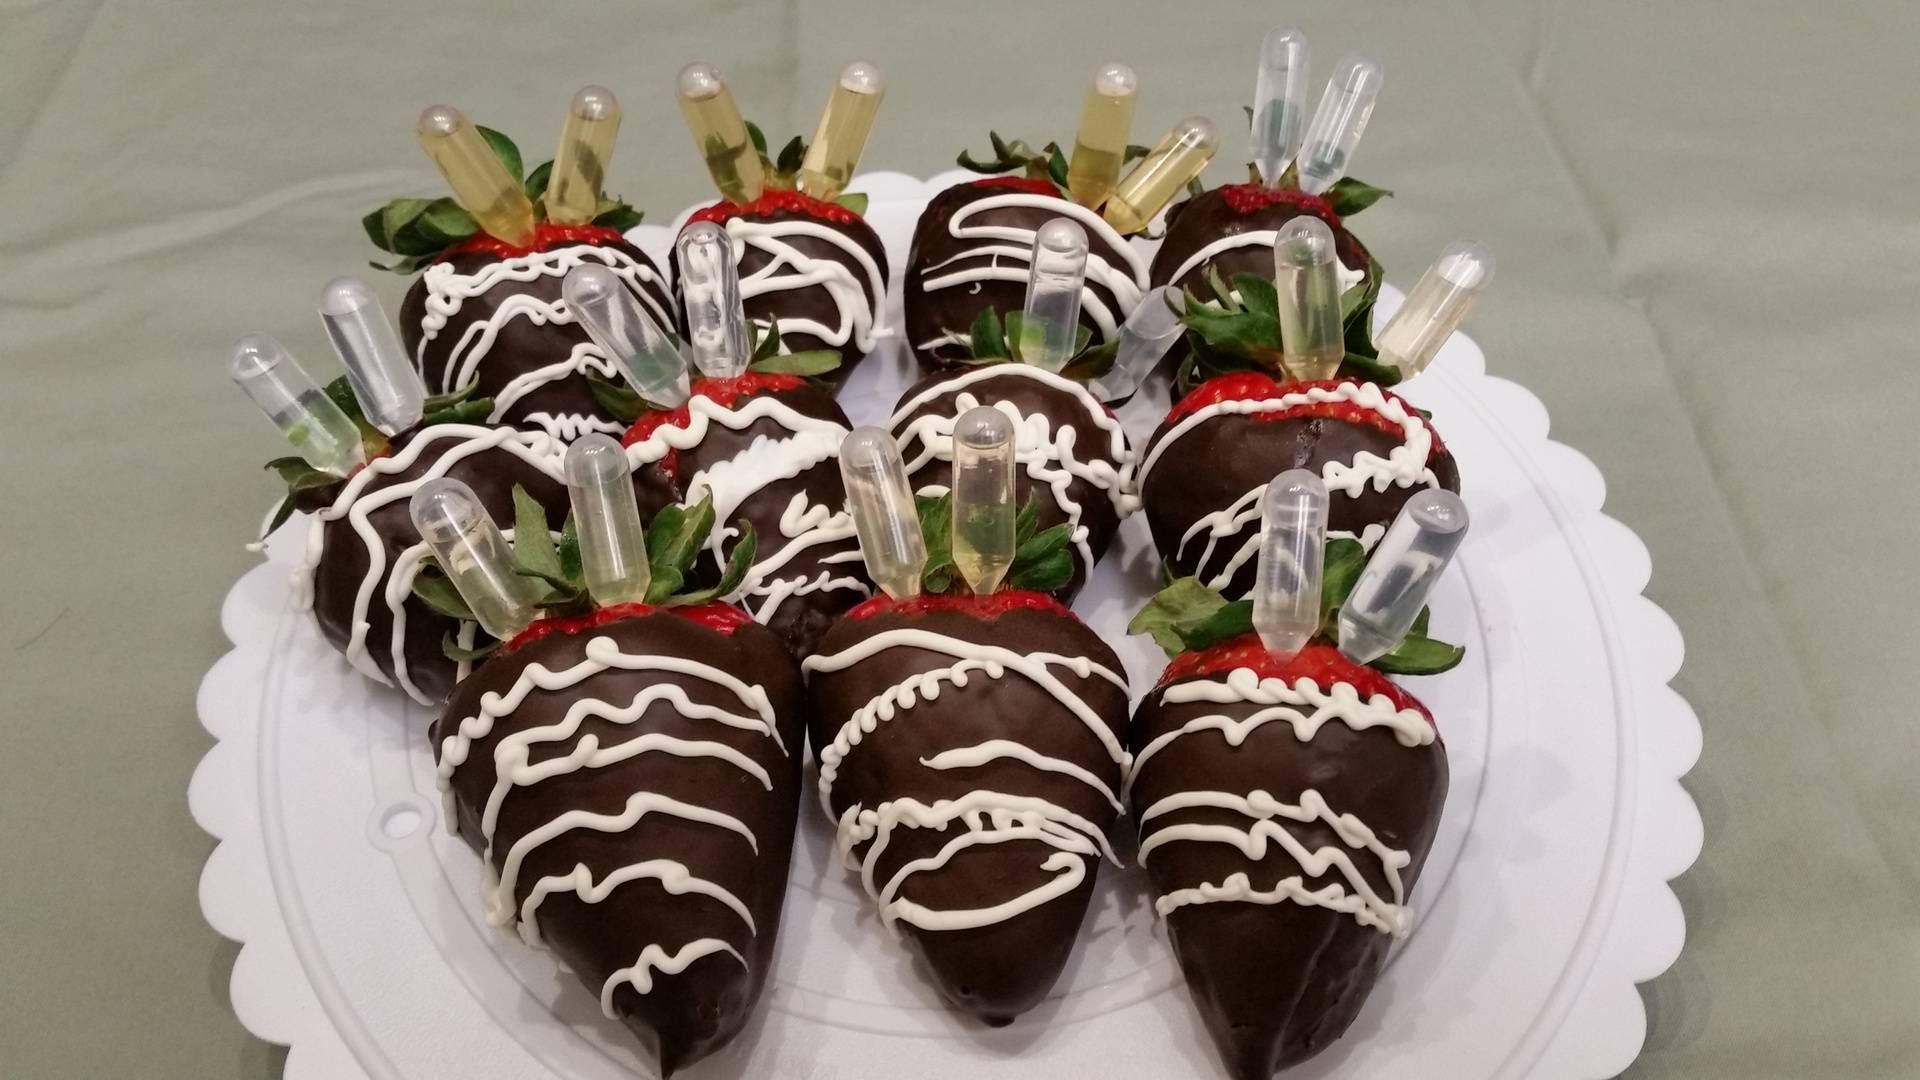 Alcohol Infused Chocolate Covered Strawberries